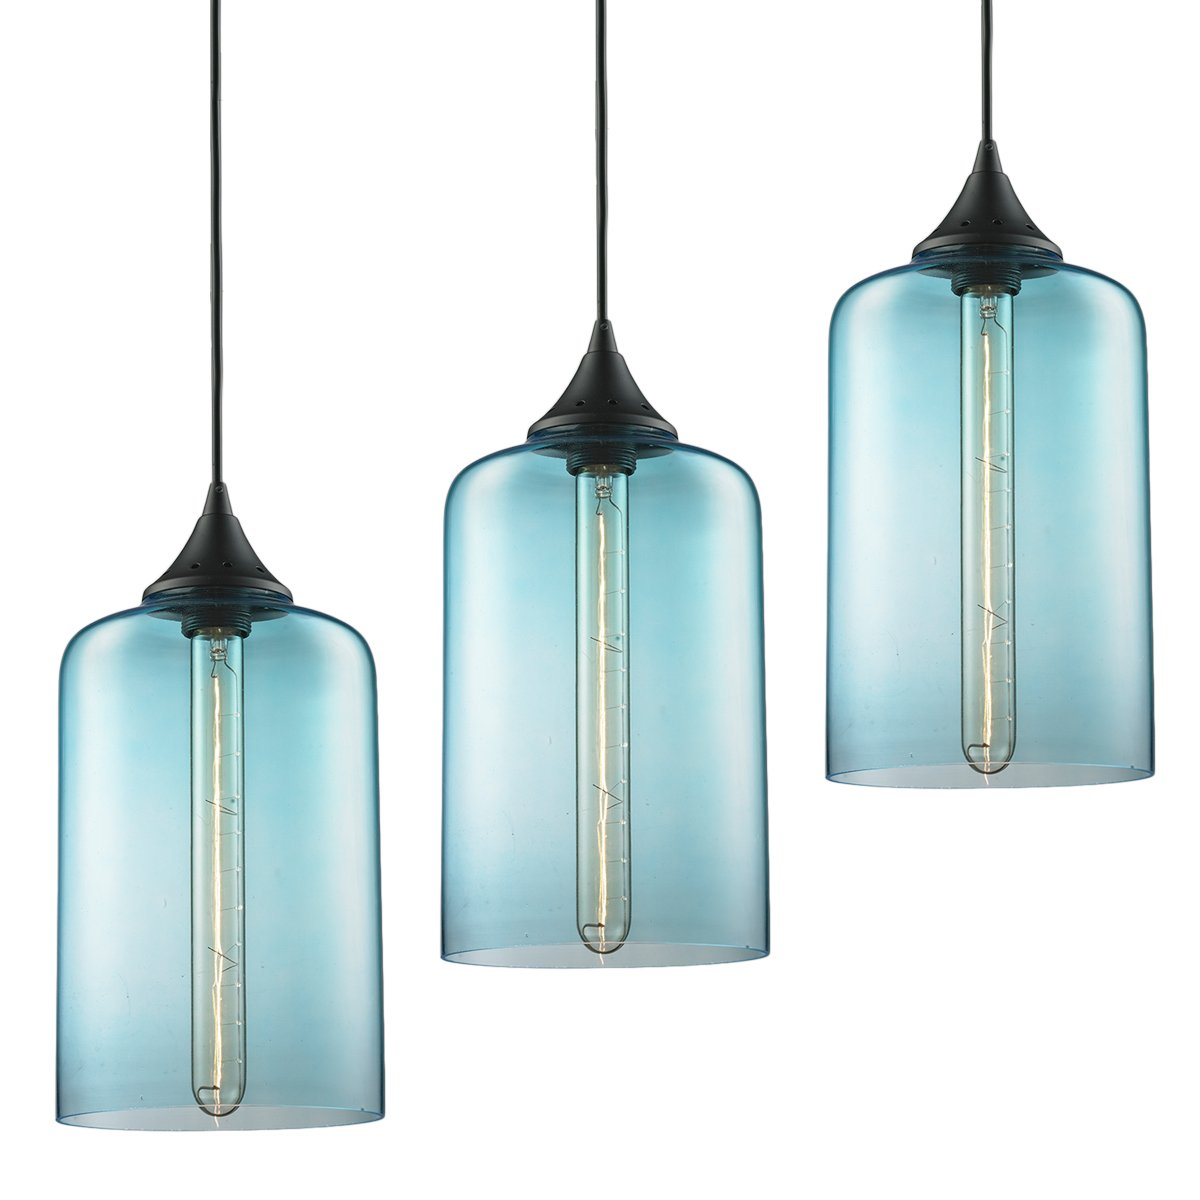 3-Pack Modern Industrial Vintage Glass Globe Pendant Light - MKLOT Minimalist Eco-Power Edison Style 7.09'' Wide Hanging Chandelier Ceiling Lighting Mounted Fixture with Blue Glass